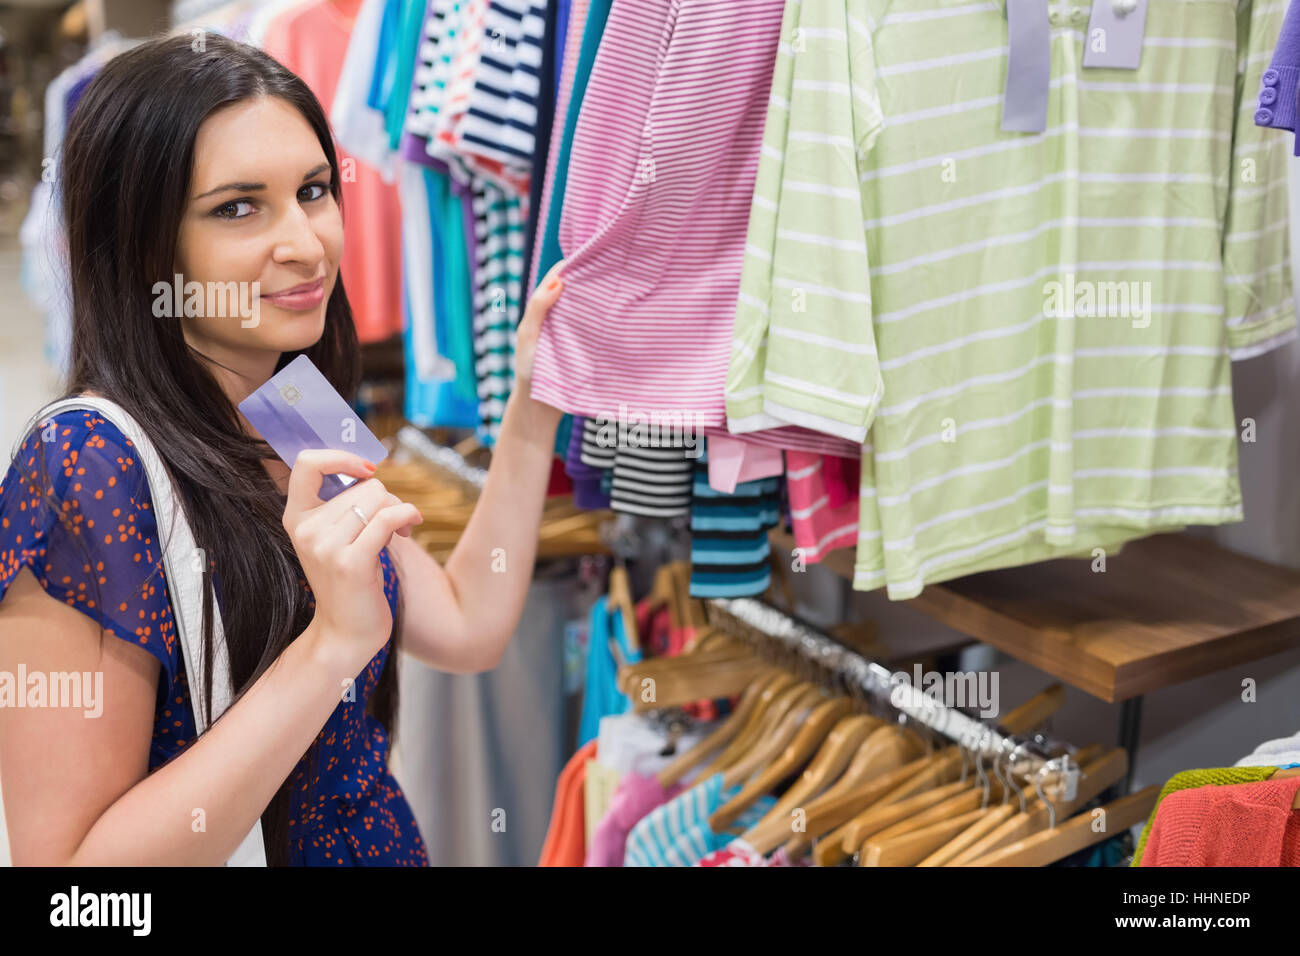 Woman Holding Credit Card Beside Clothing Display In Clothes Store